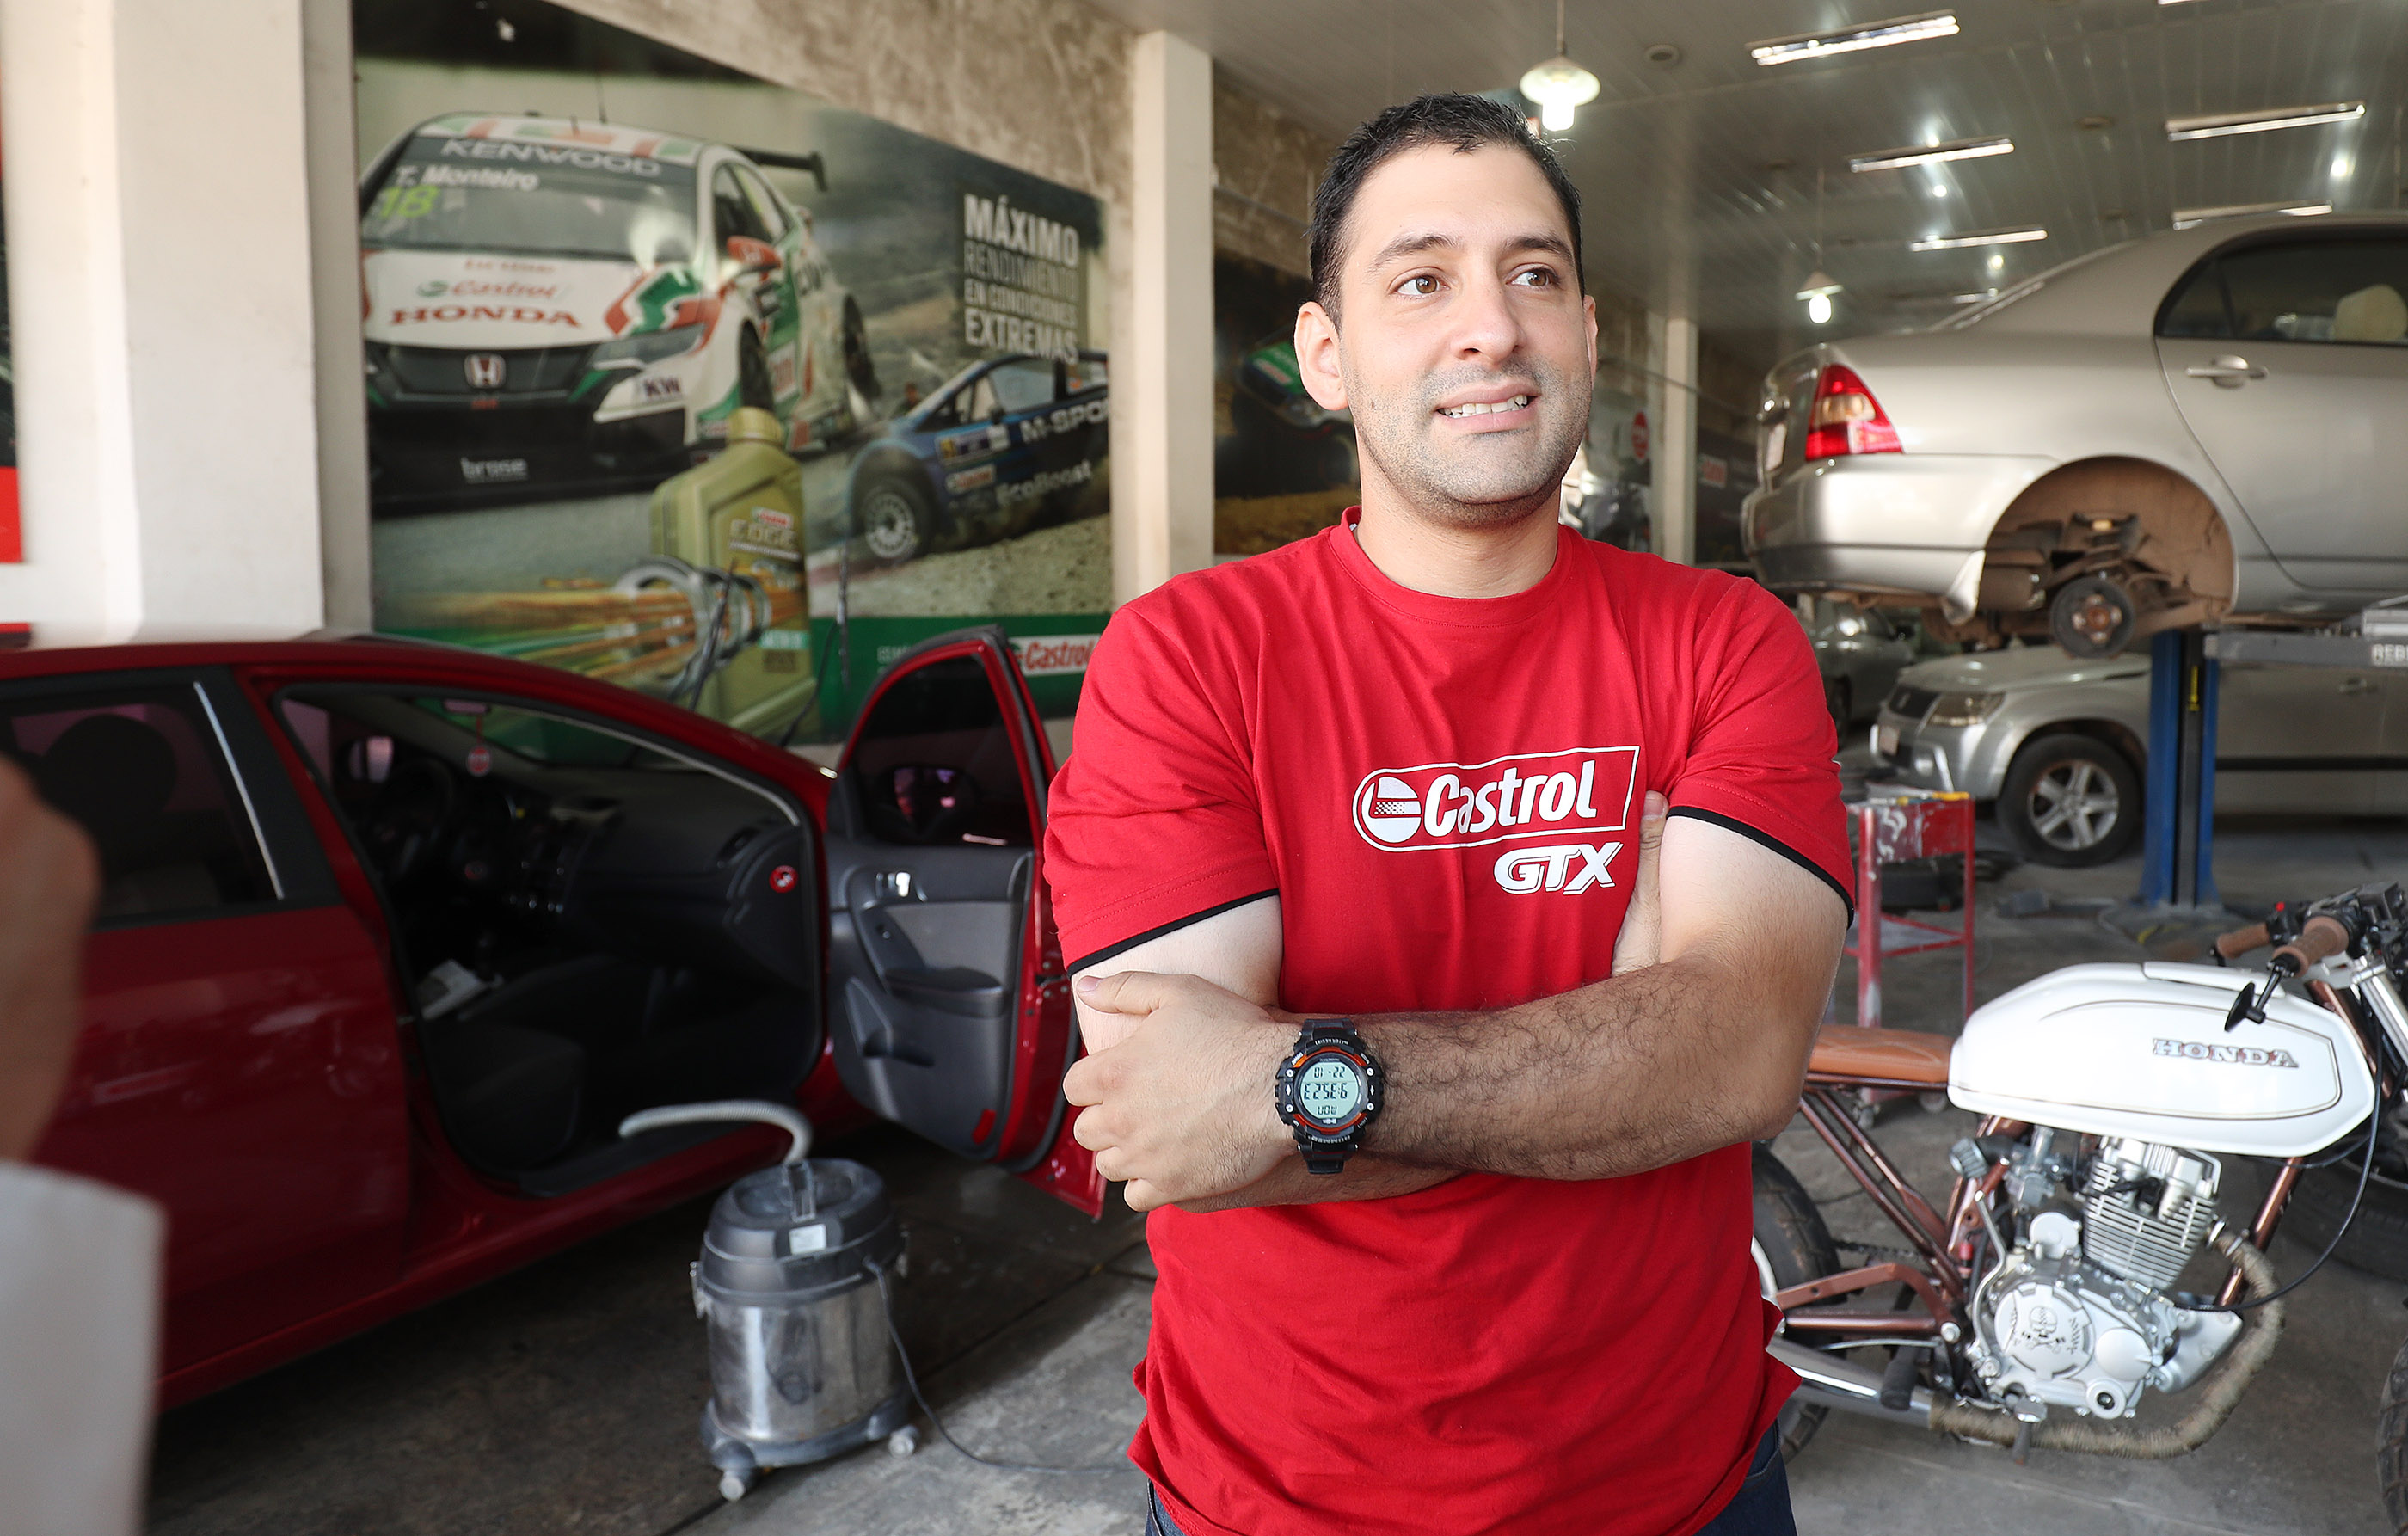 Bishop Lorenzo Britez talks about his car wash and auto body store in Asuncion, Paraguay, on Monday, Oct. 22, 2018. Bishop Britez took Self Reliance courses offered by the Church to help with his business skills.